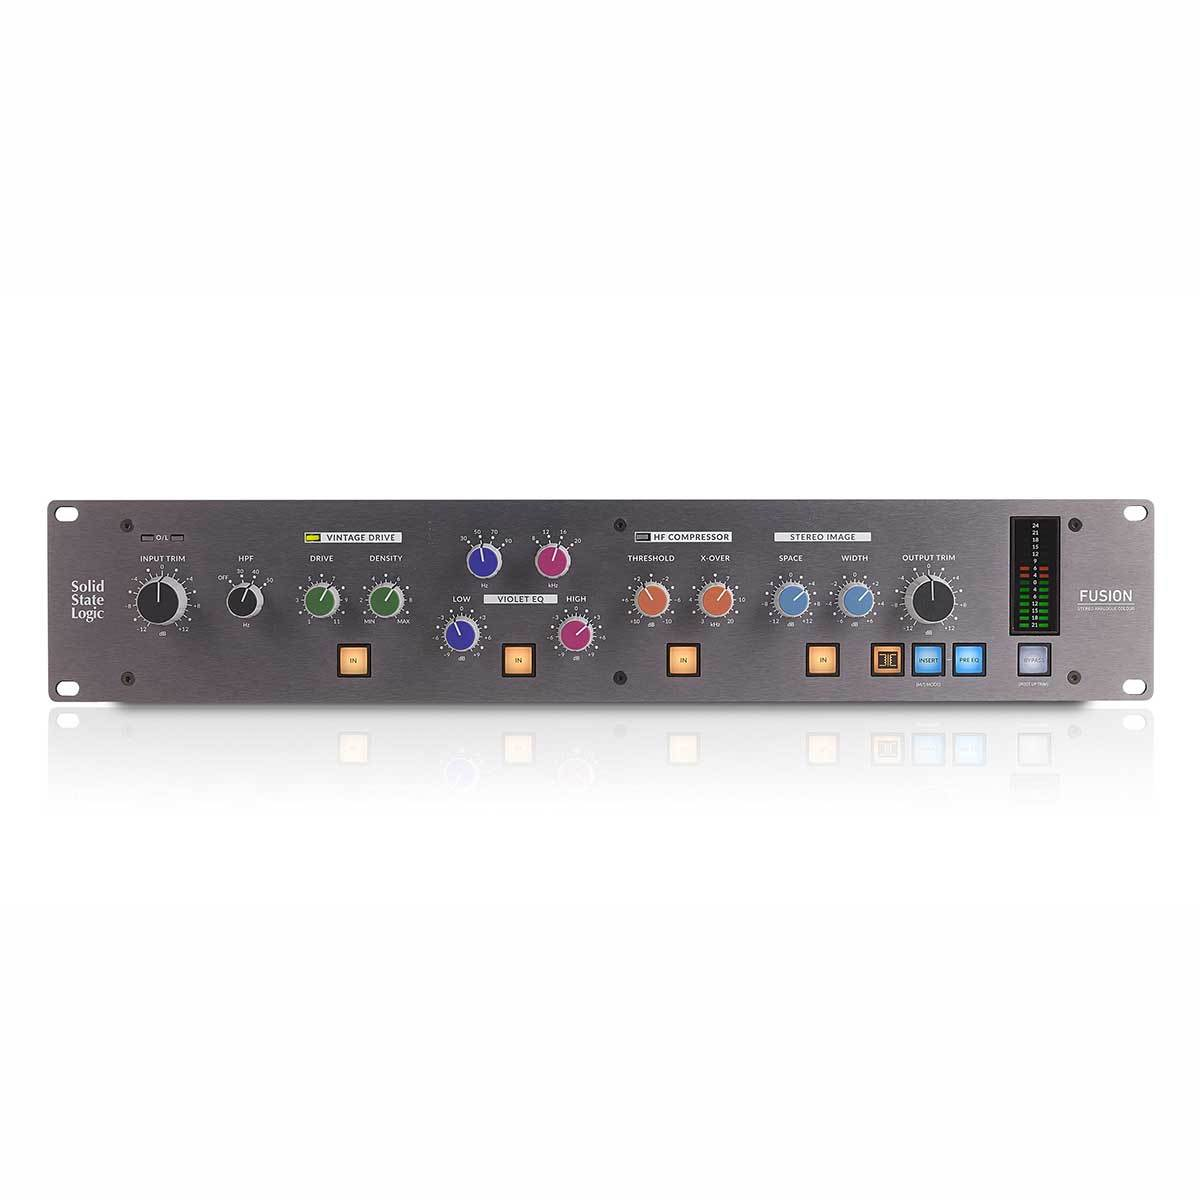 Solid State Logic Fusion Stereo Analogue Processor